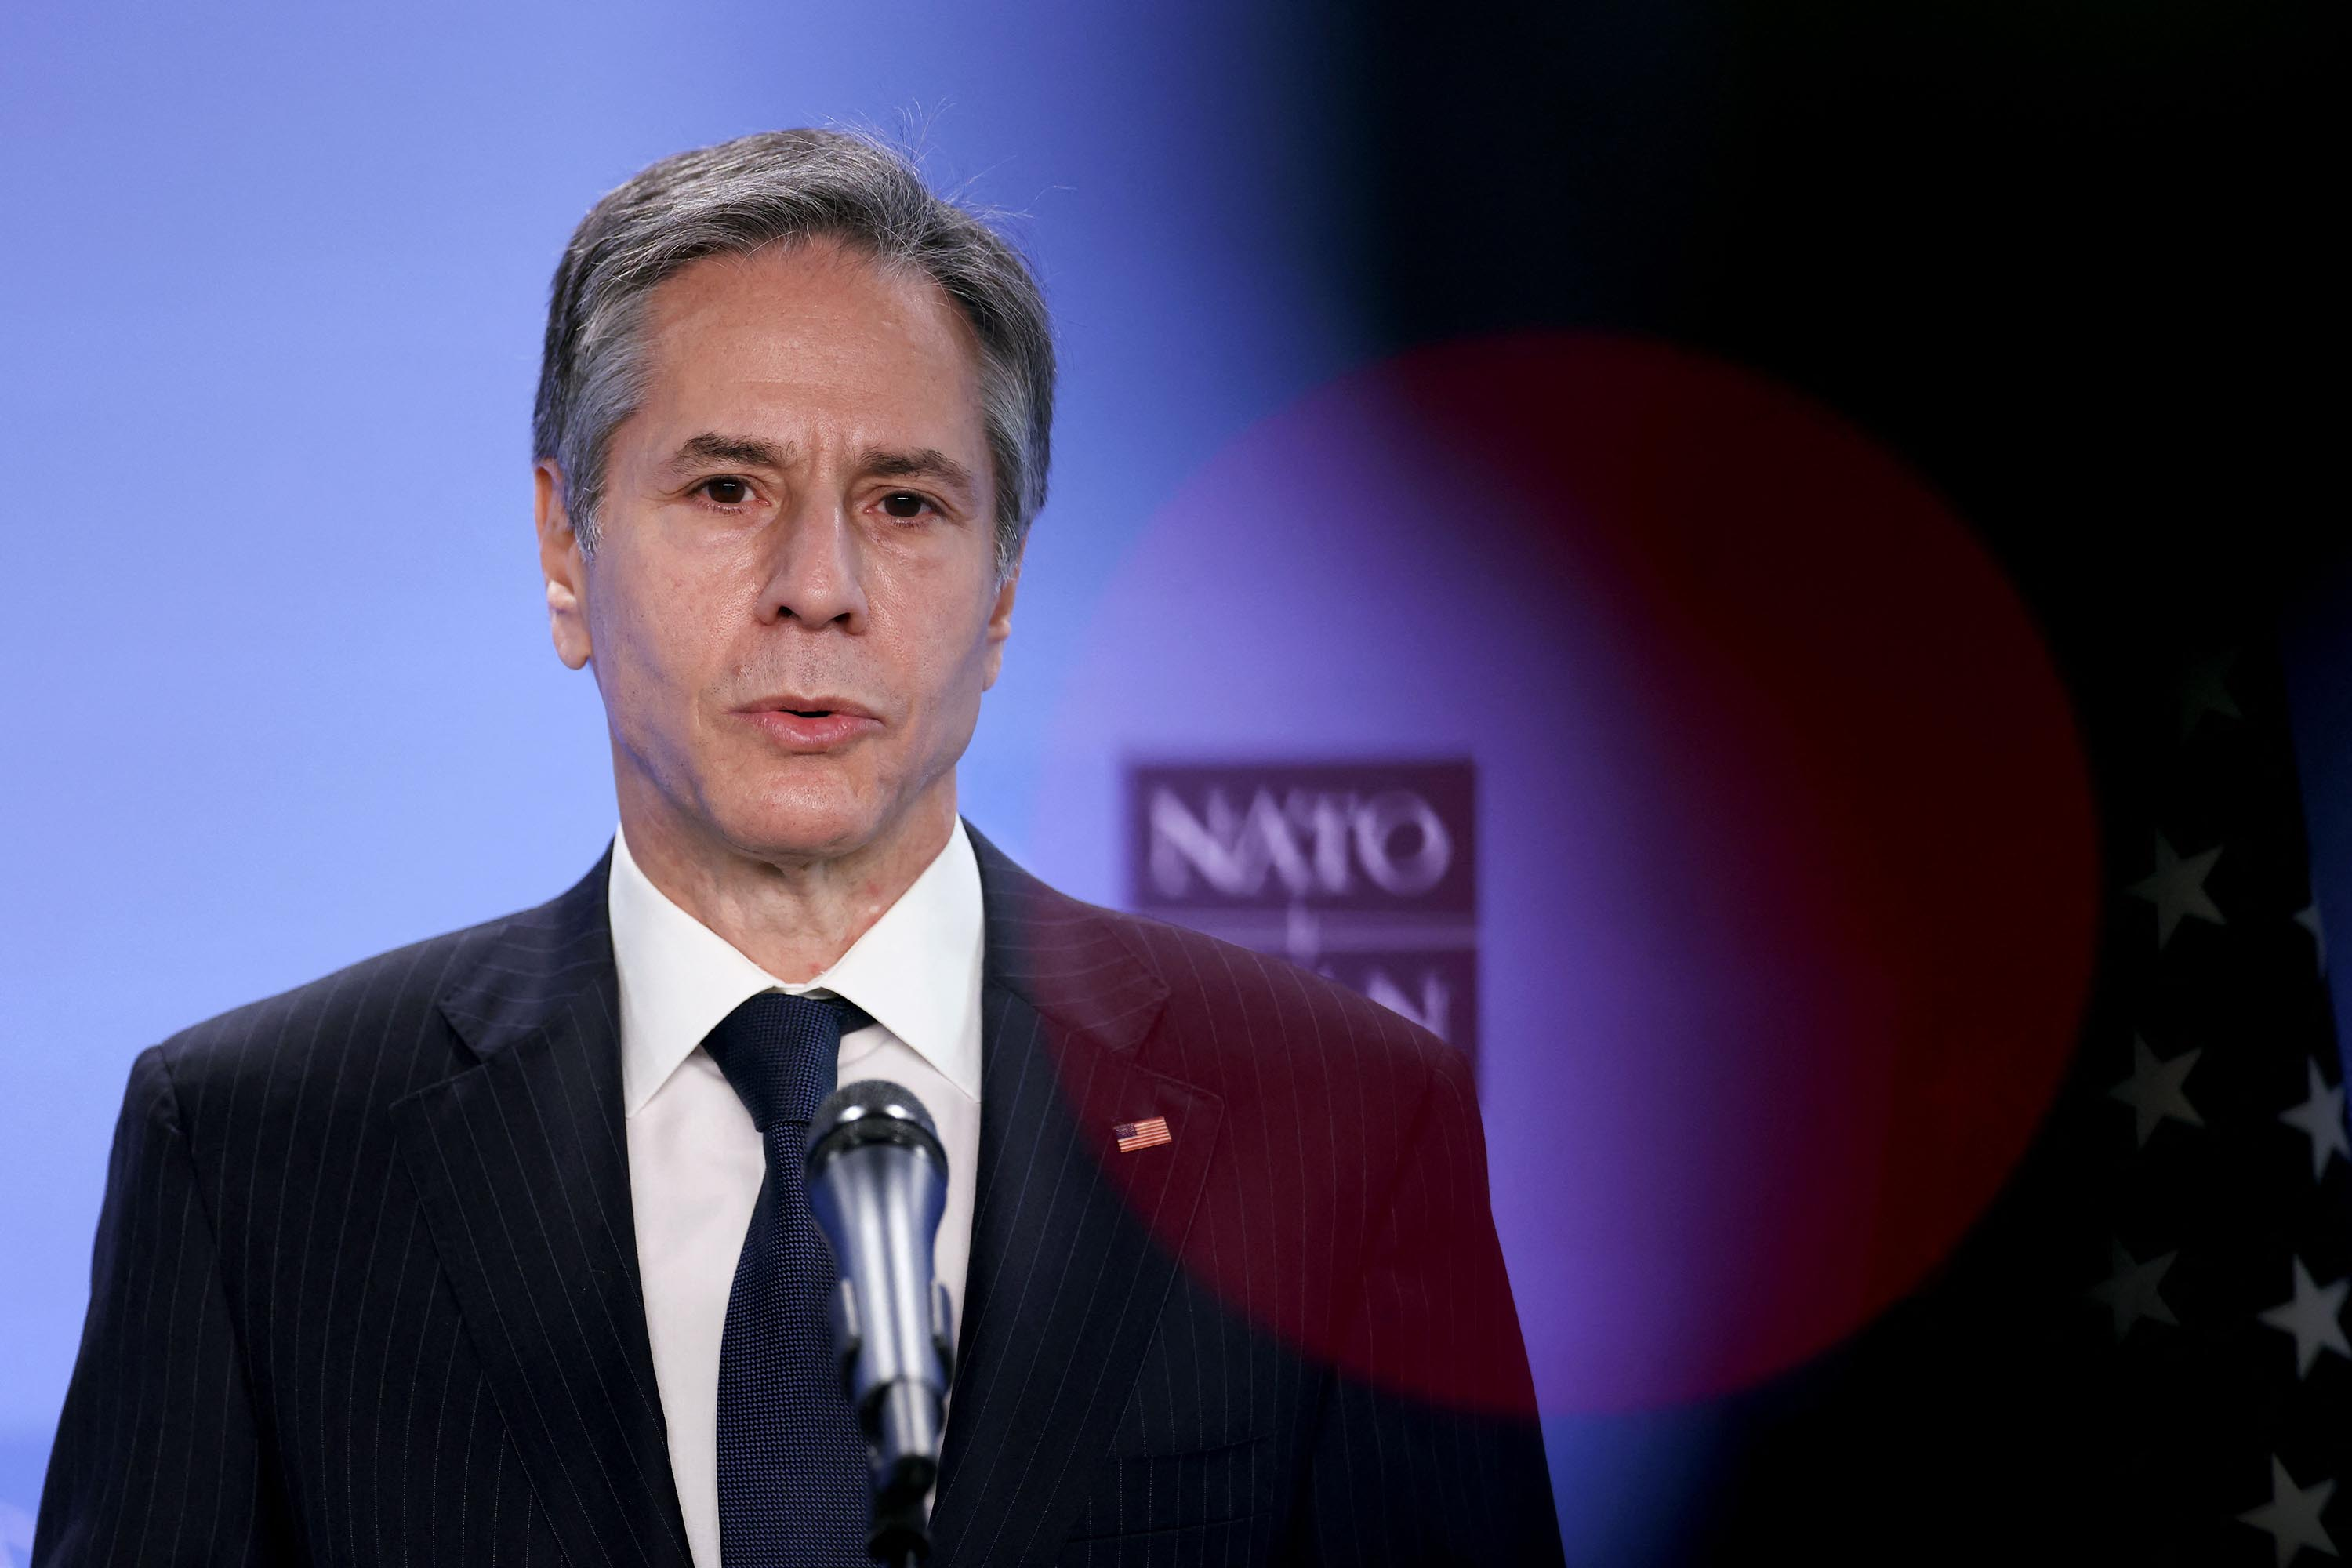 Blinken says US 'actively looking' at boosting security cooperation with Ukraine during trip to Kiev